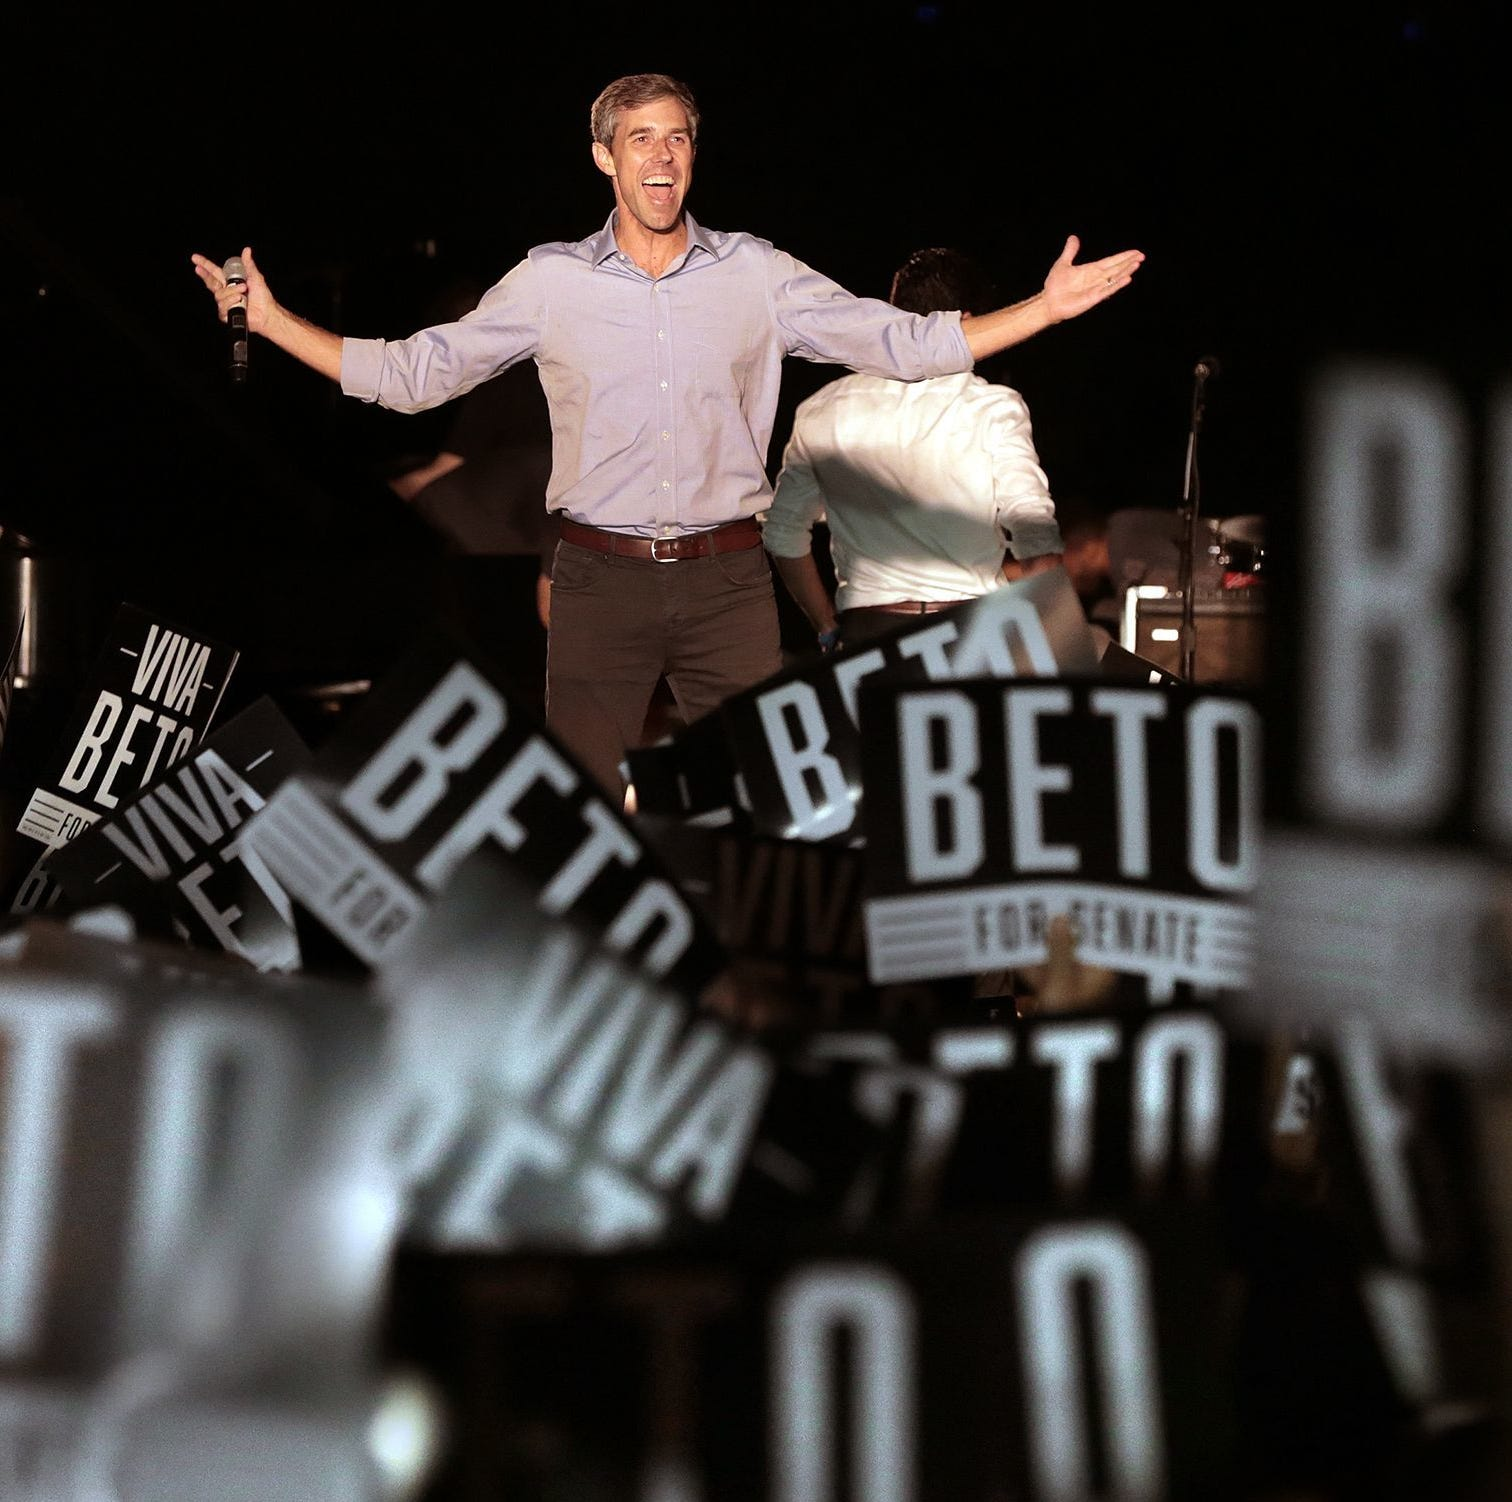 Beto is a childhood nickname; pronounce it Bet-toe — Letters to the editor